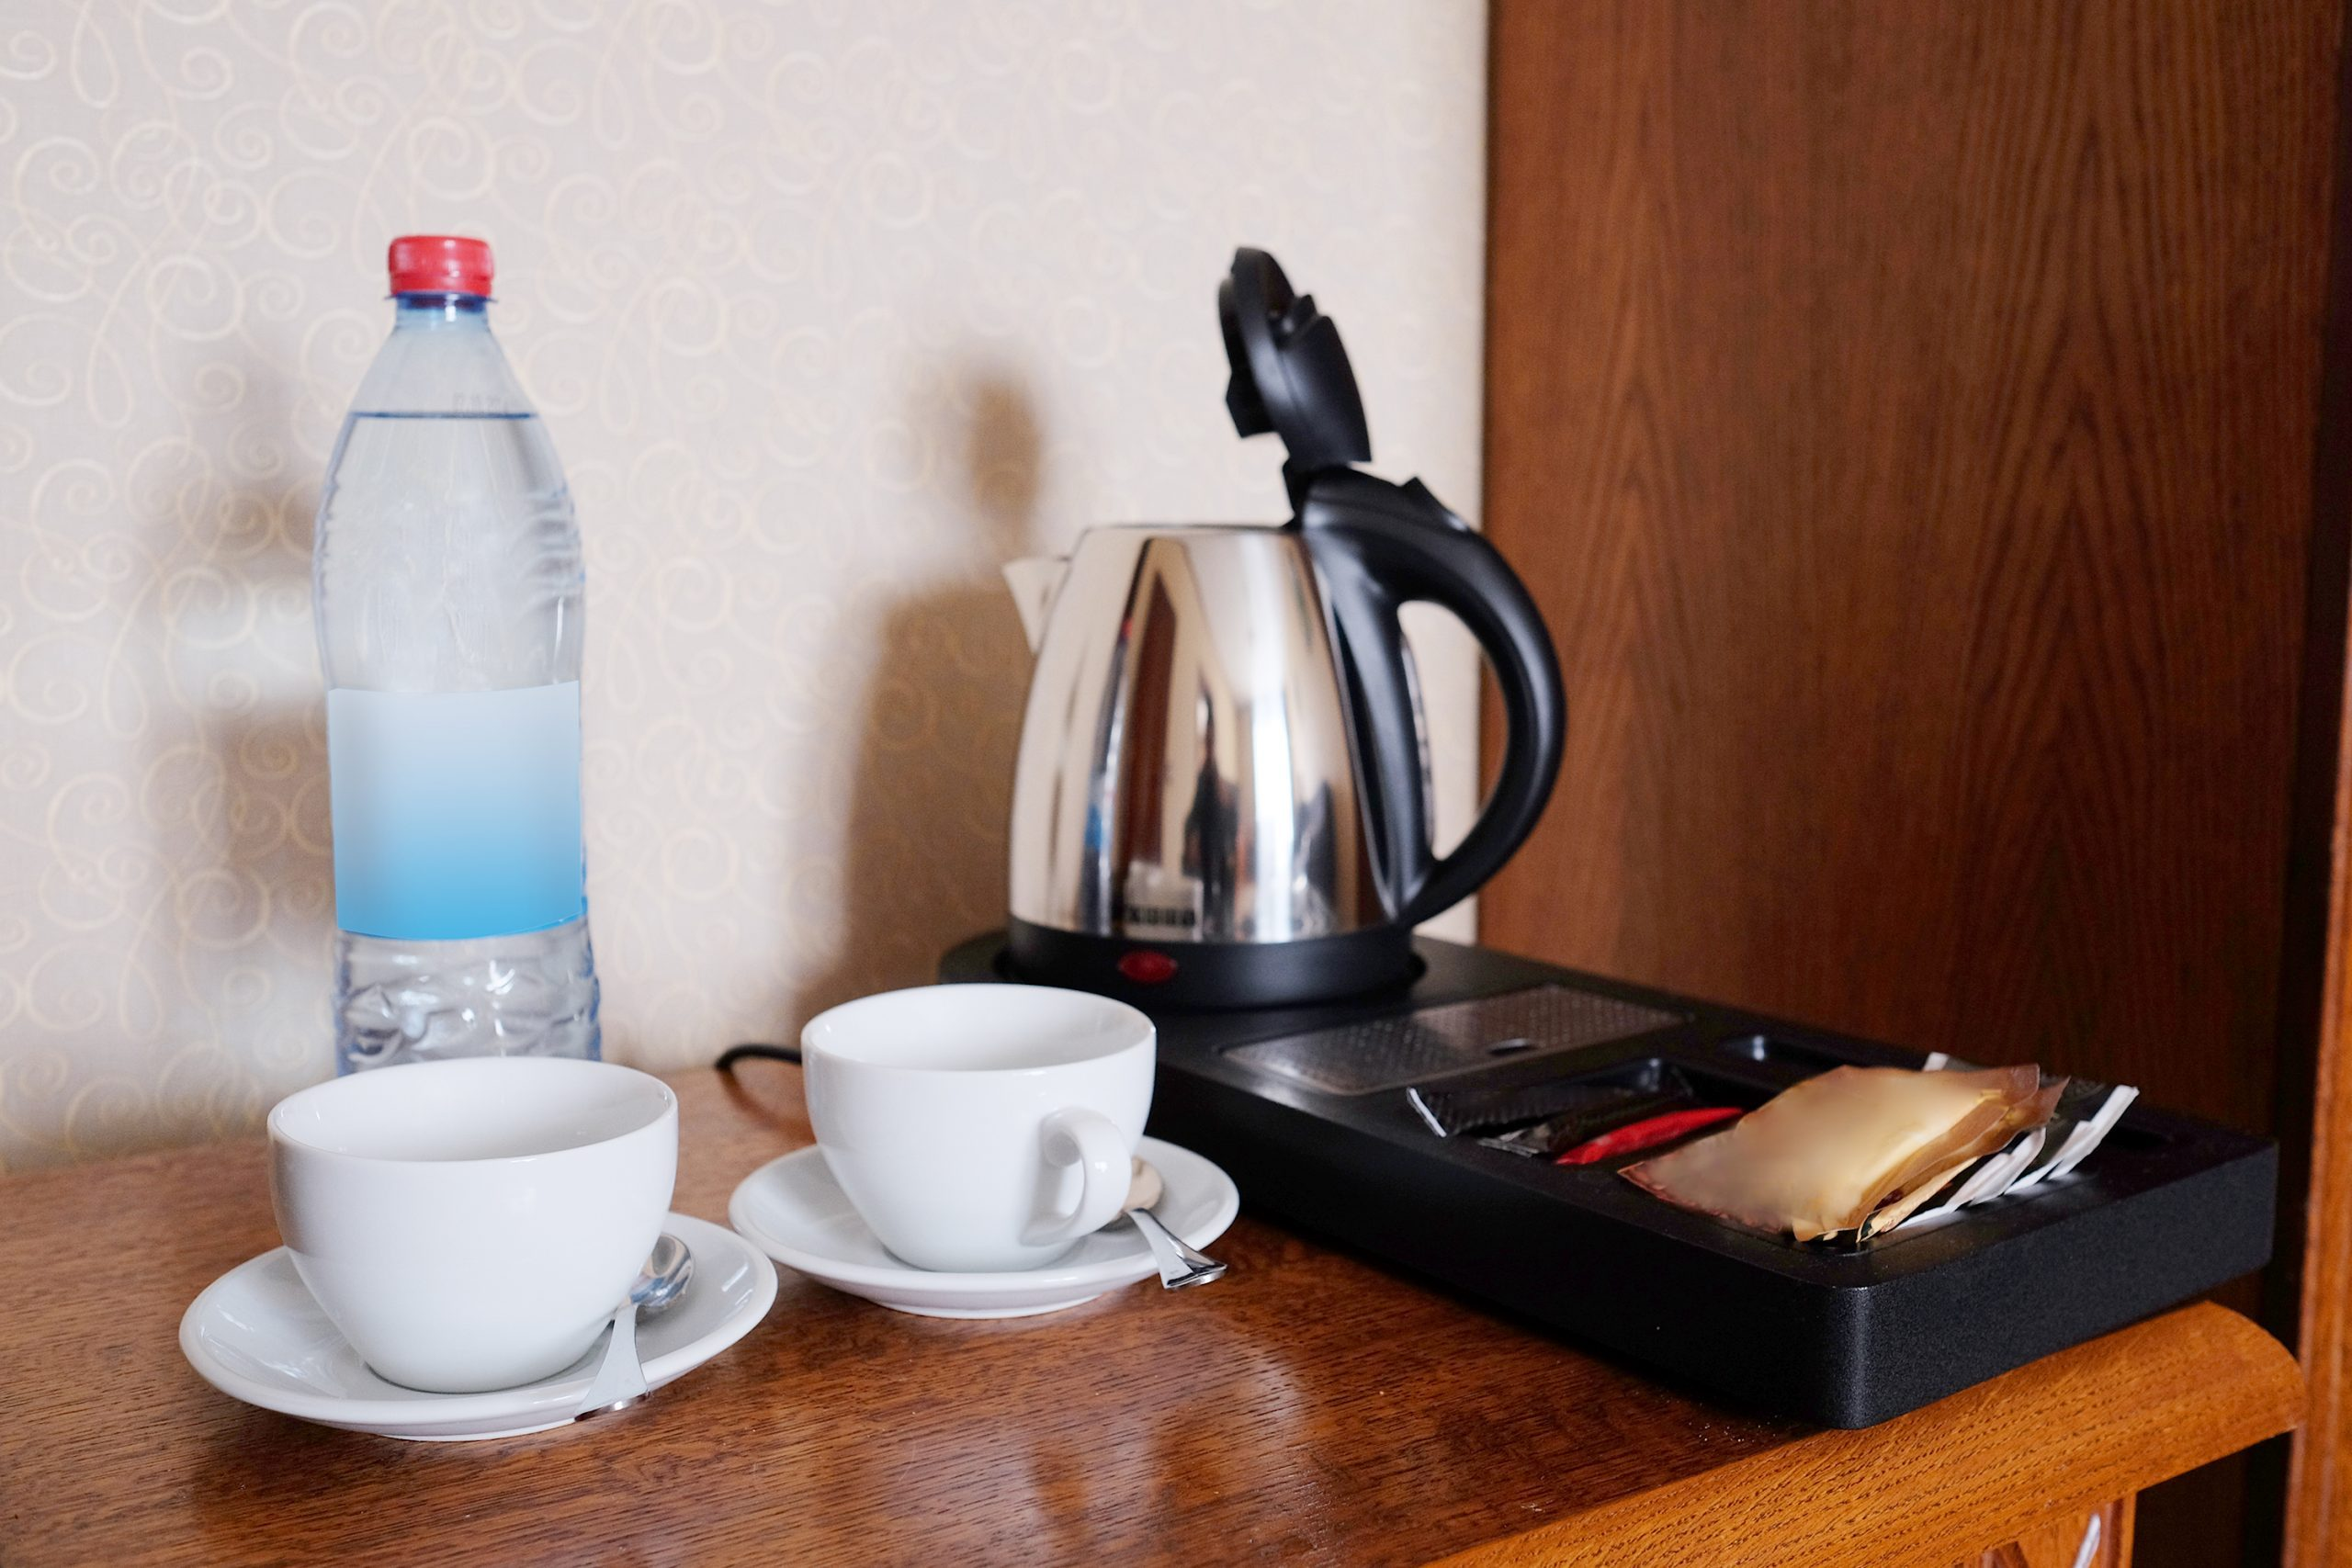 coffee maker in a hotel room next to mugs and a bottled water